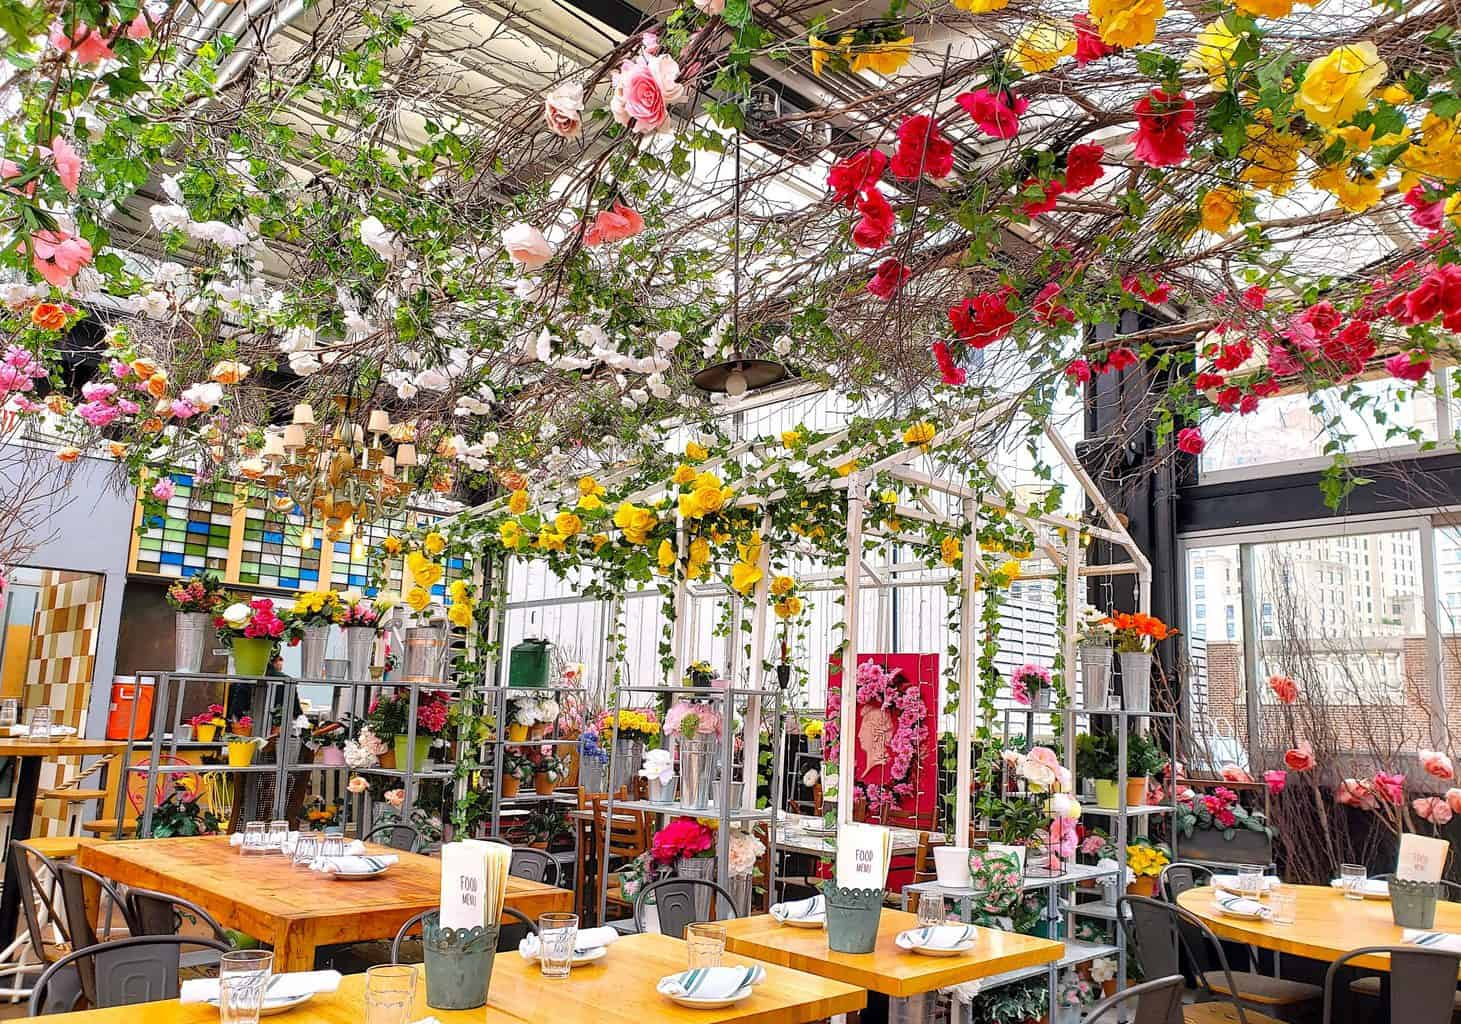 Serra by Birreria rooftop bar with beautiful floral decor.